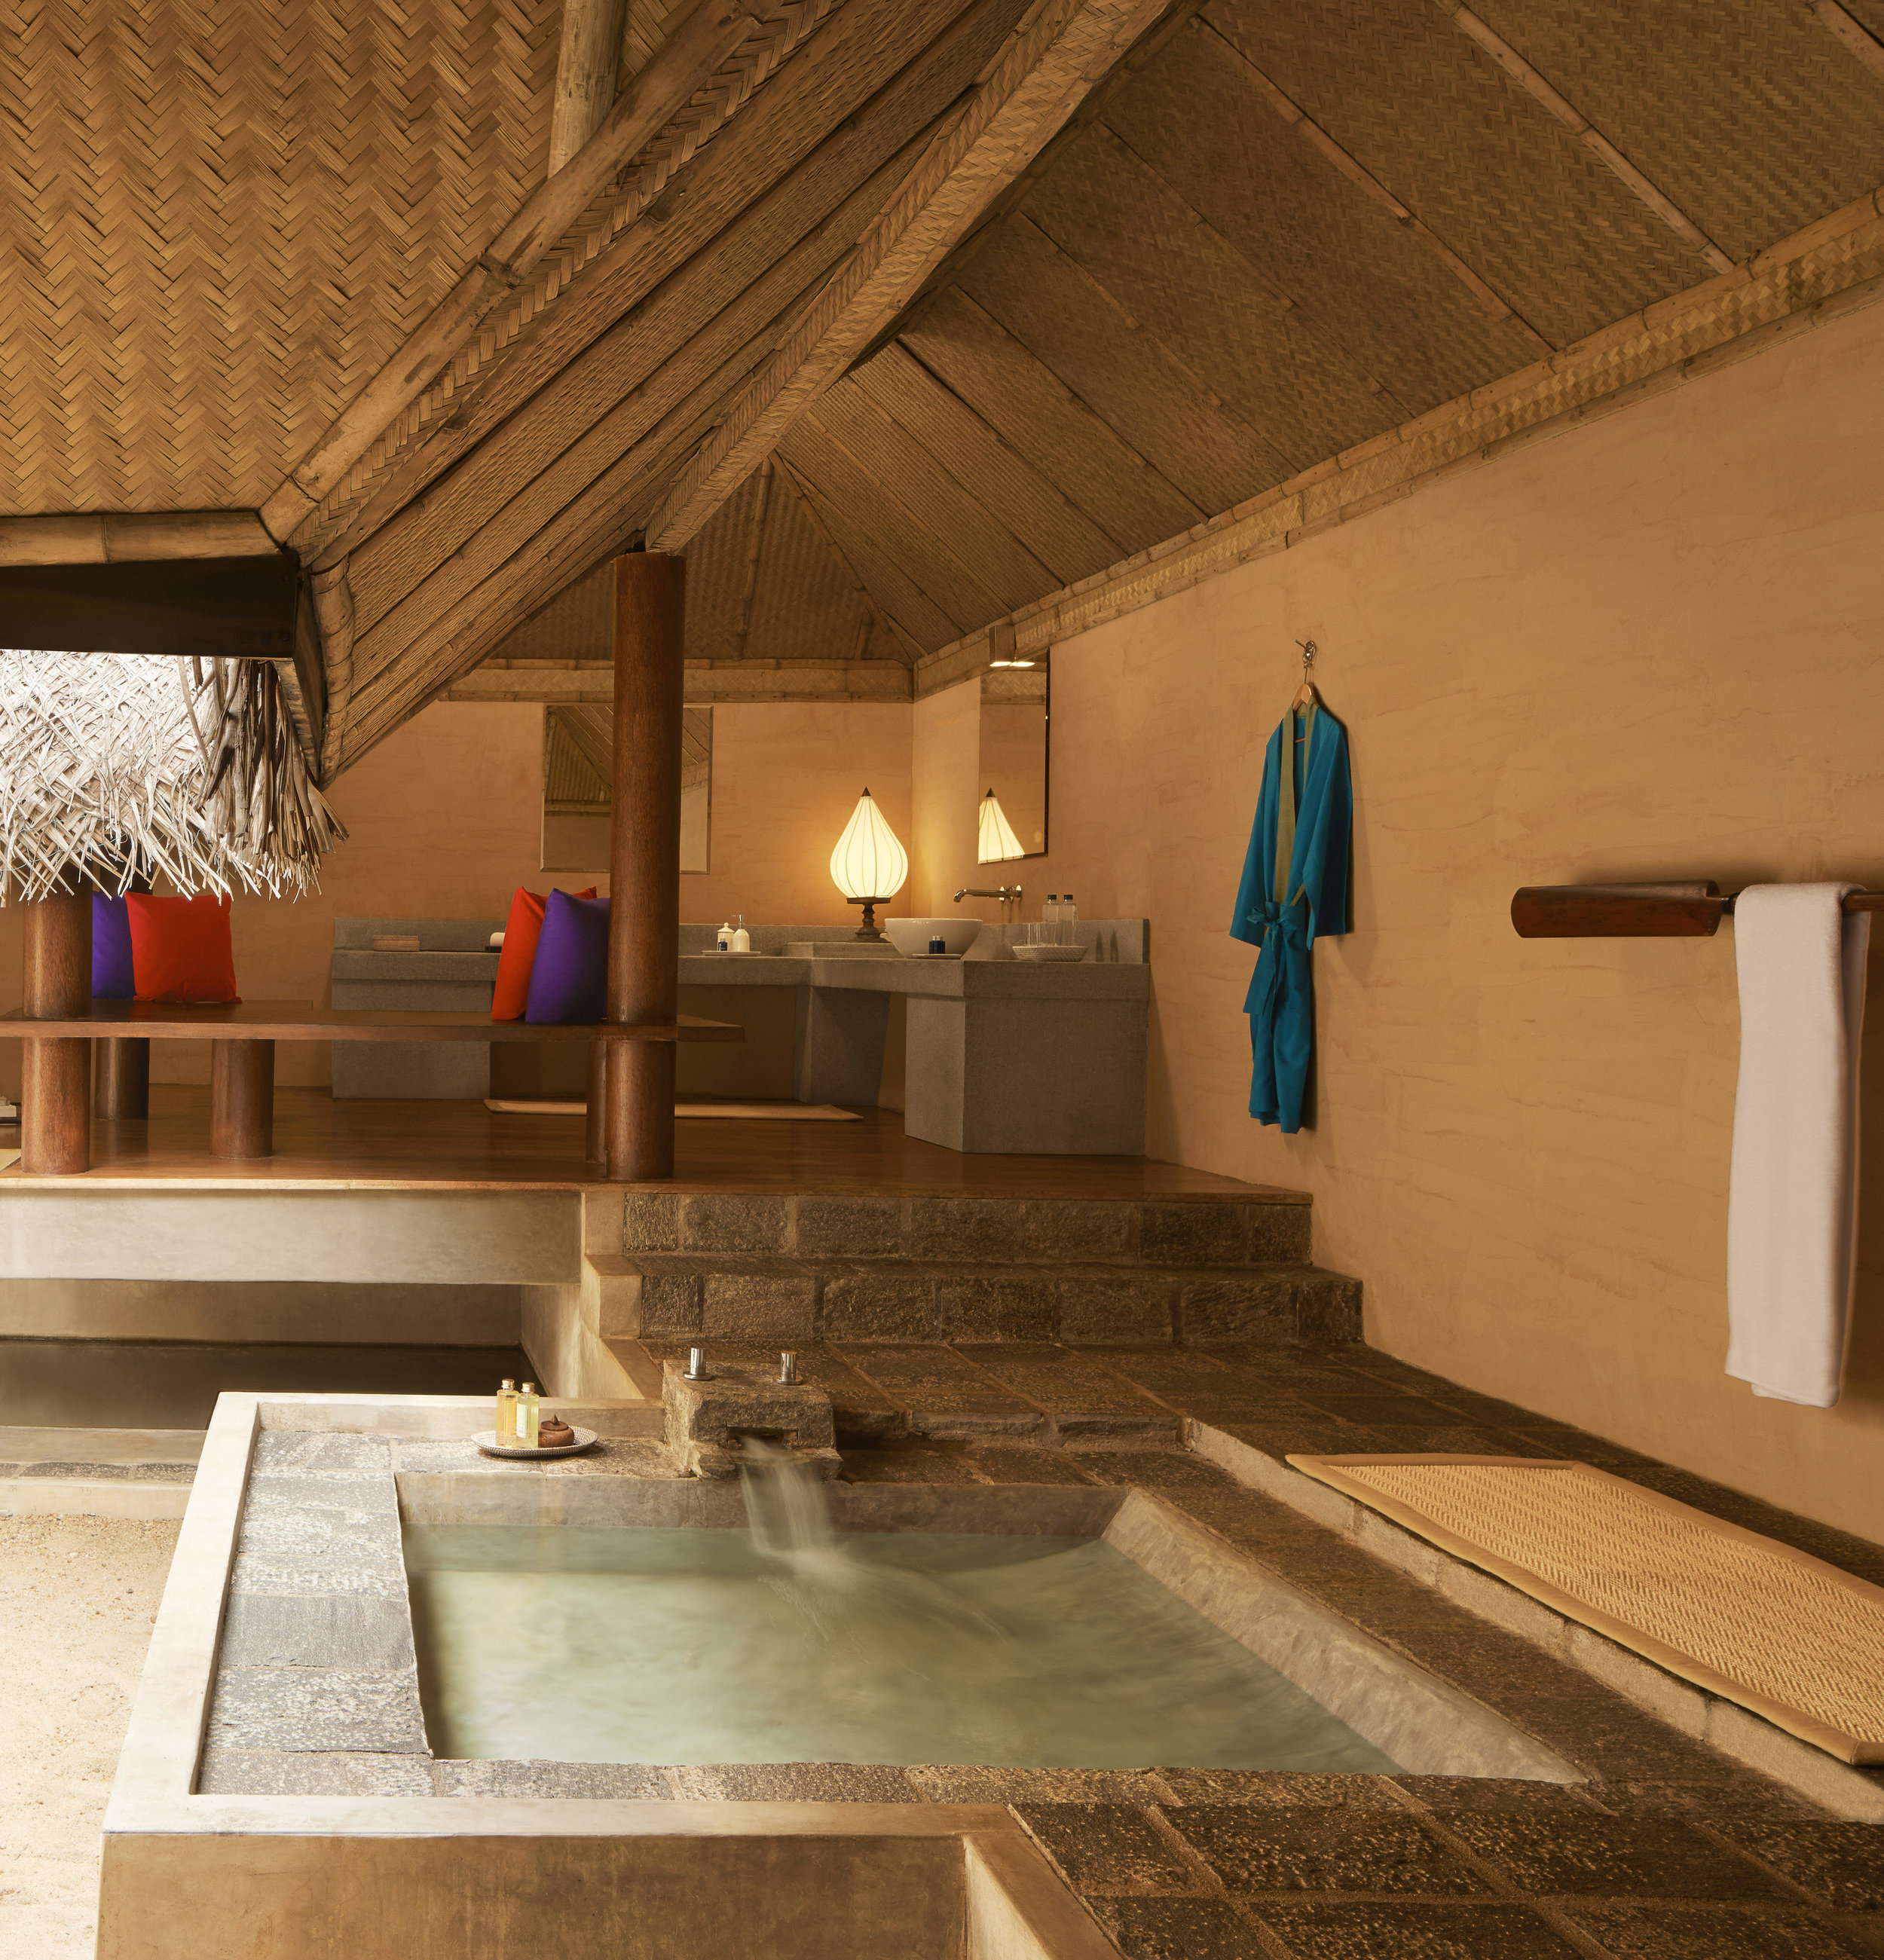 invite-to-paradise-sri-lanka-specialists-experts-travel-agent-tour-operator-jetwing-viluyana-hotel-cultural-triangle-dwelling-bedroom-forest-bathroom-2.jpg